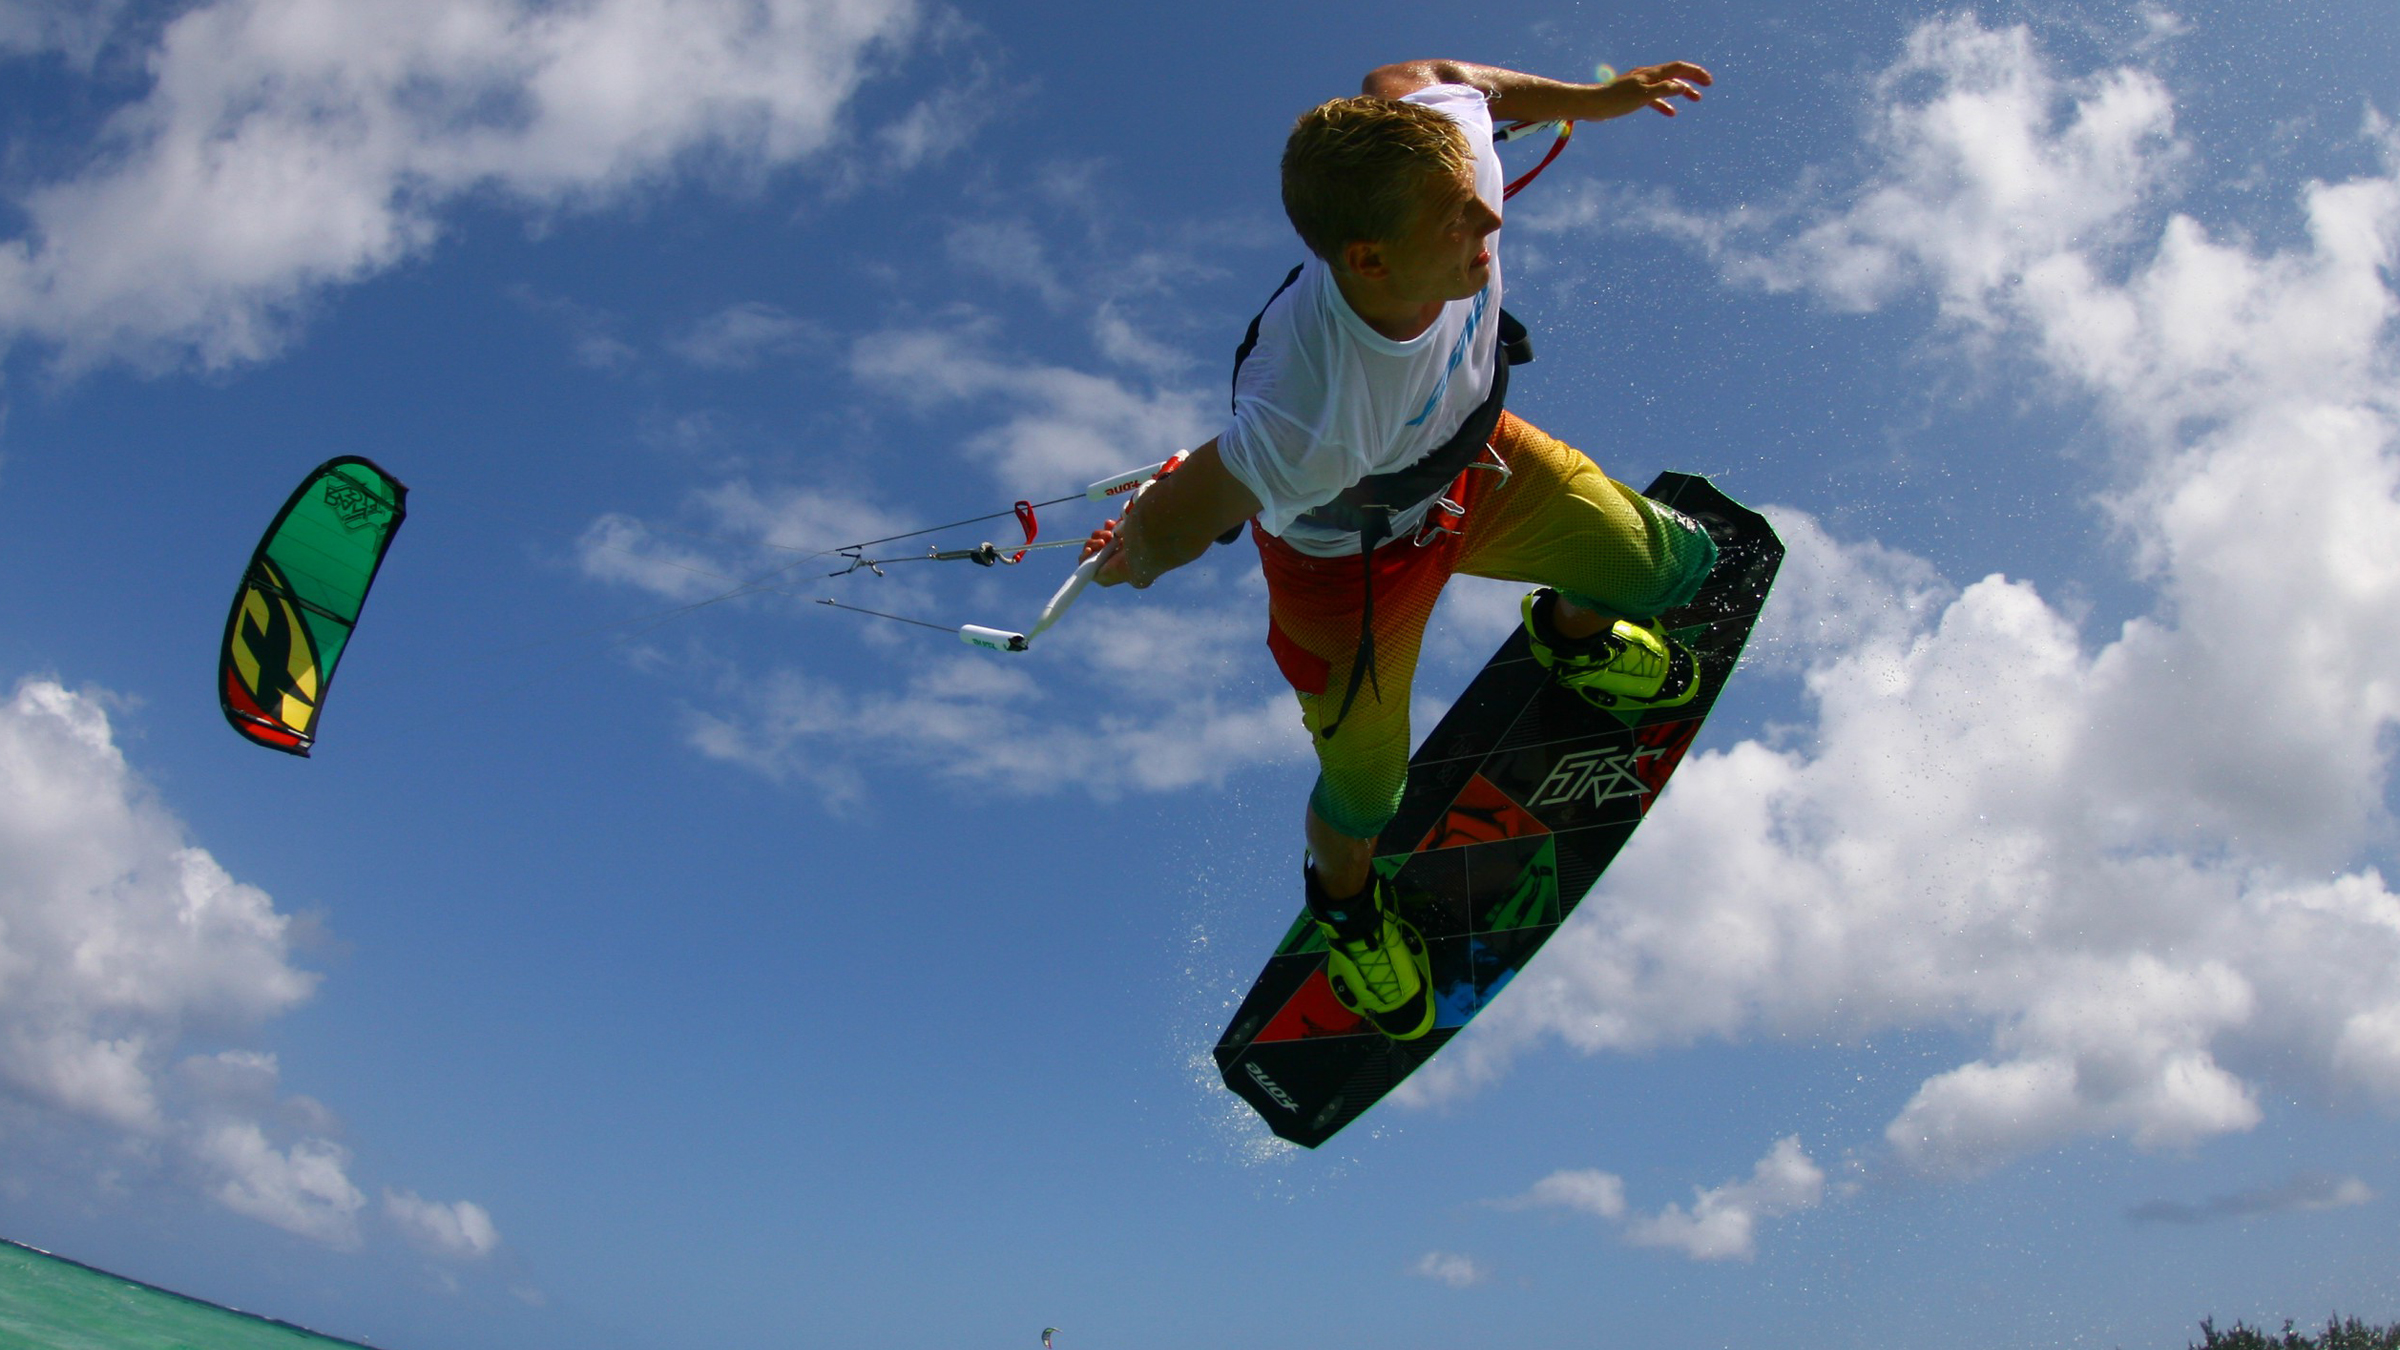 kitesurf wallpaper image - Antoine Fermon passing the bar low - in resolution: High Definition - HD 16:9 2400 X 1350